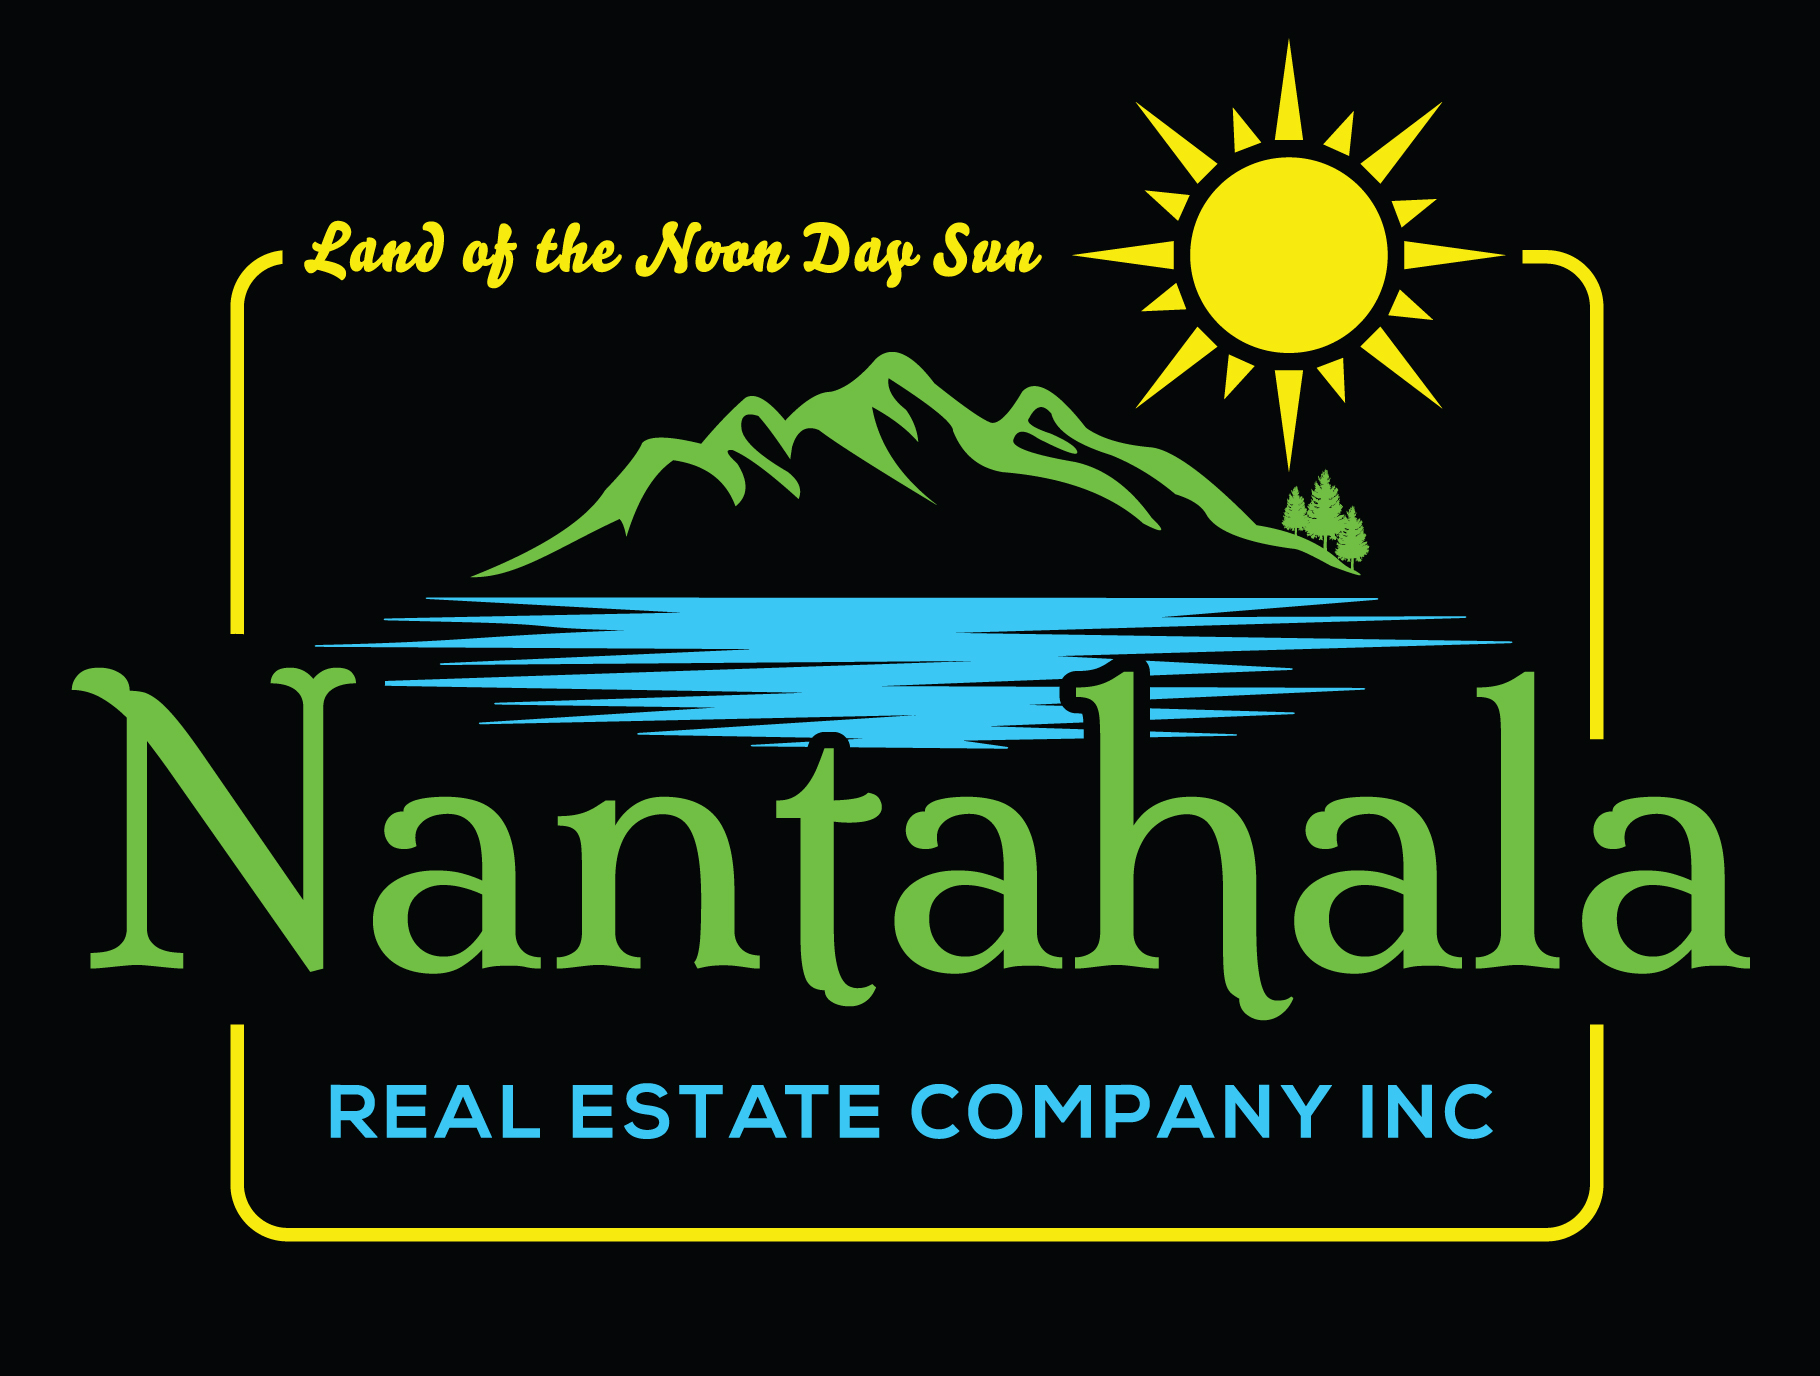 Nantahala Real Estate Company Inc.